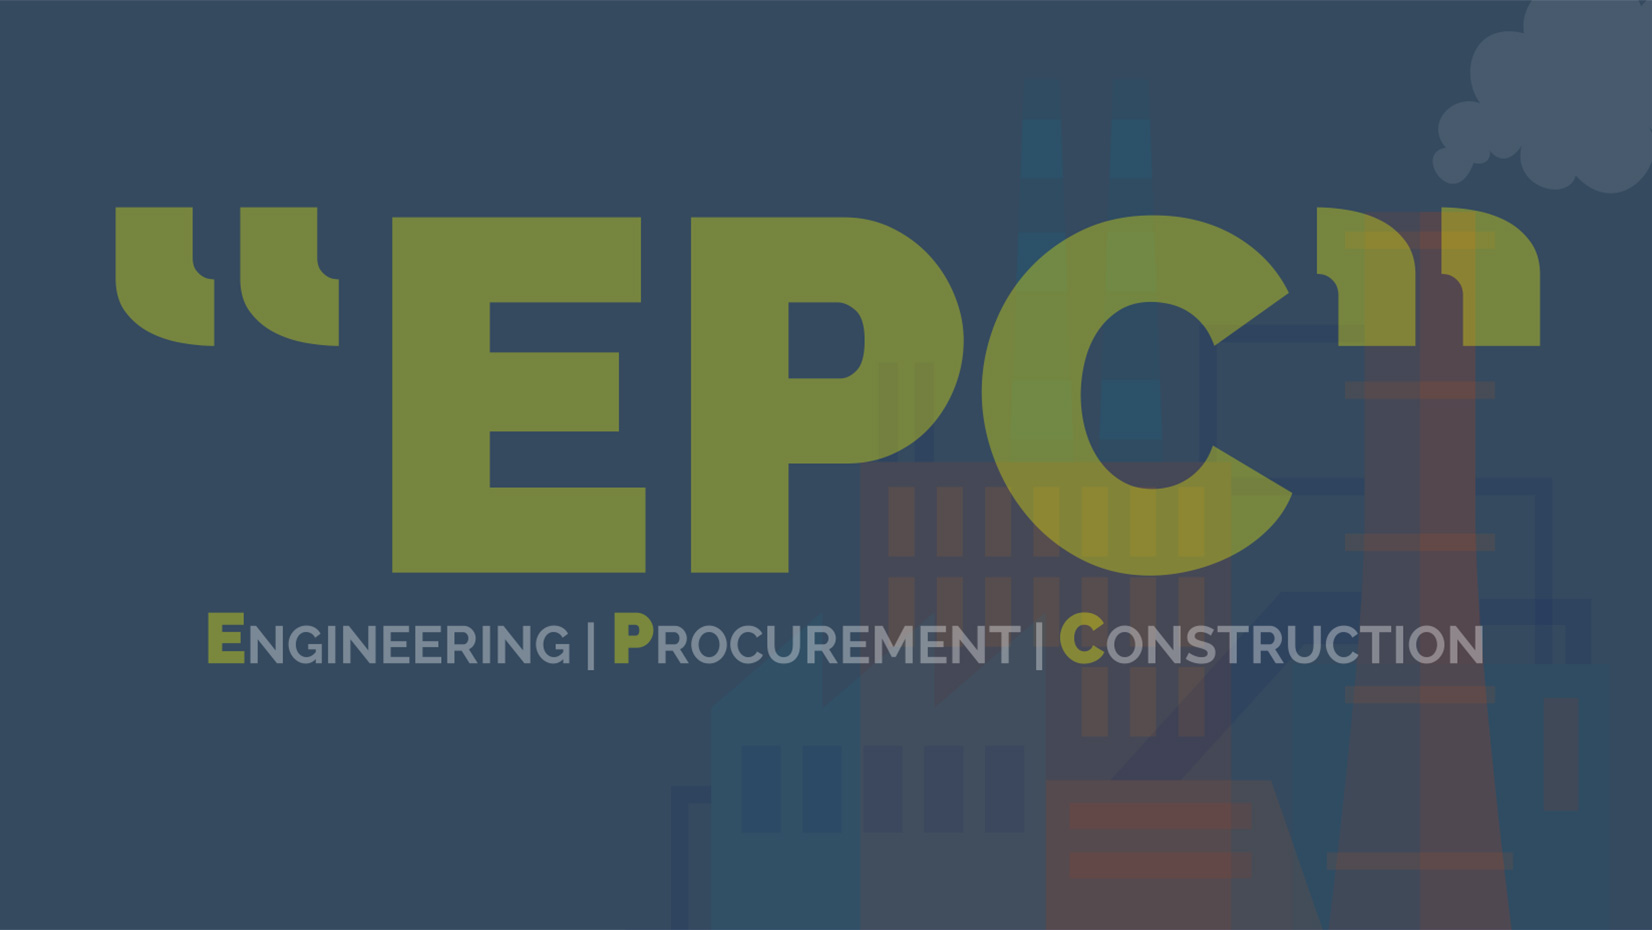 What Is Epc >> What Is Epc Unikey Solutions